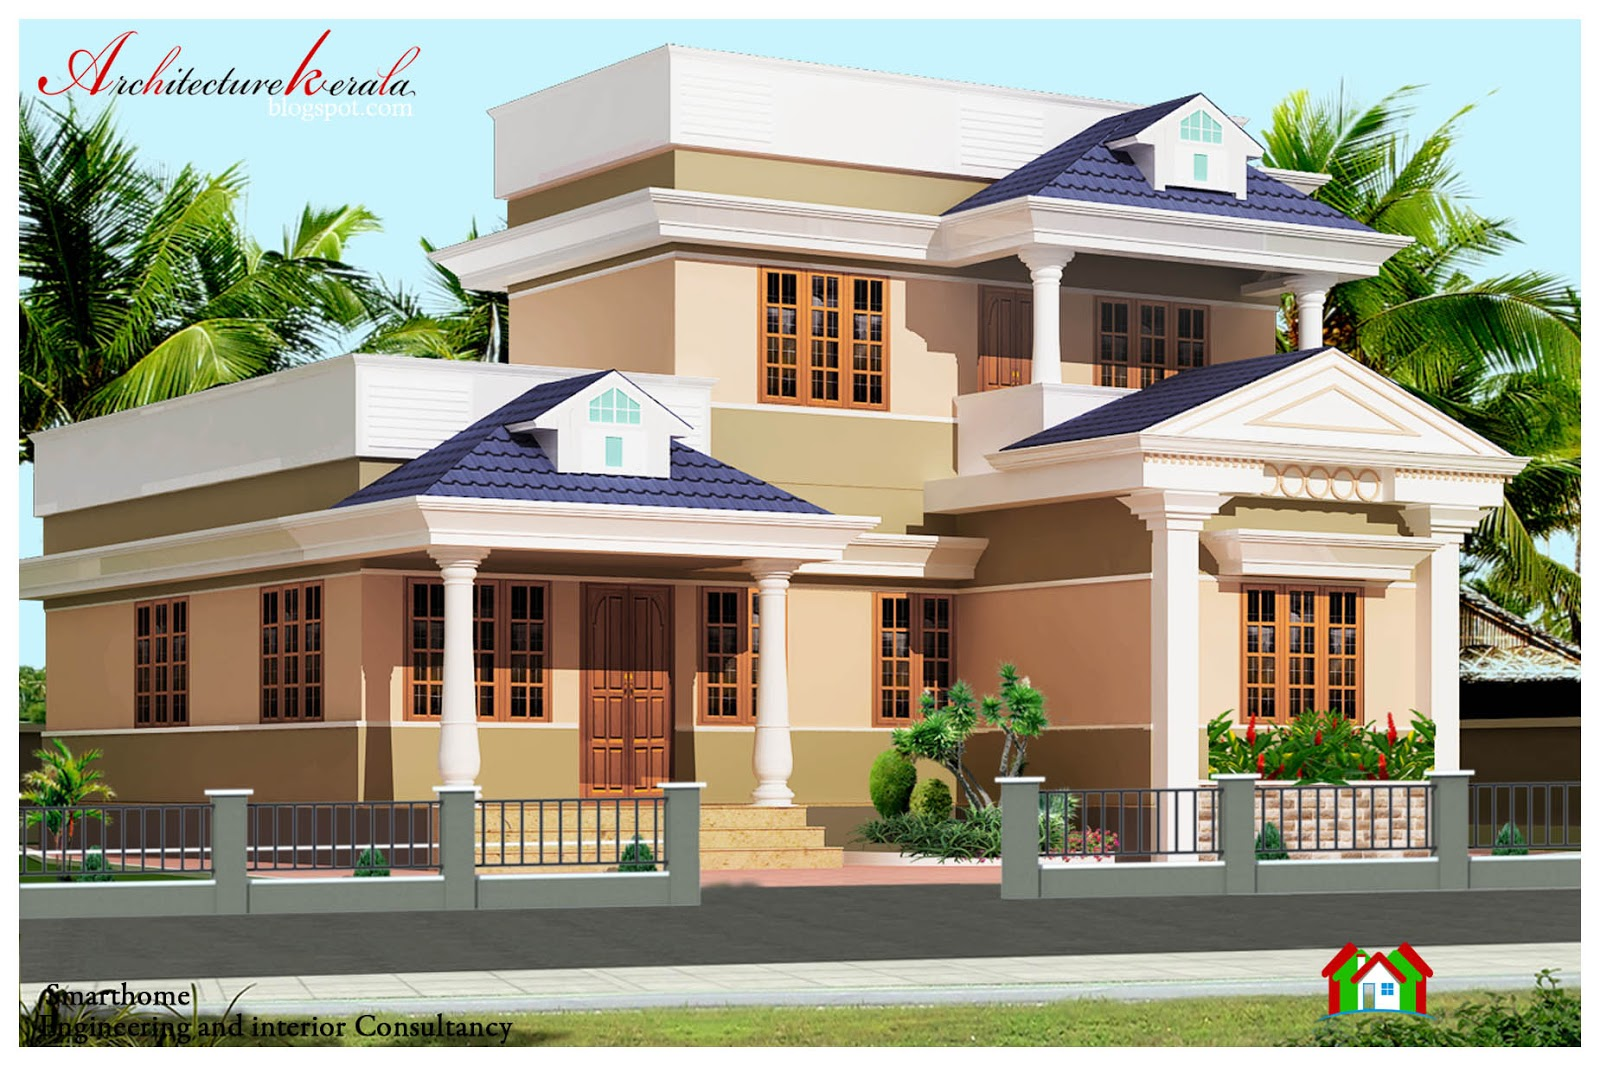 1000 sq ft kerala style house plan architecture kerala for Kerala home style 3 bedroom